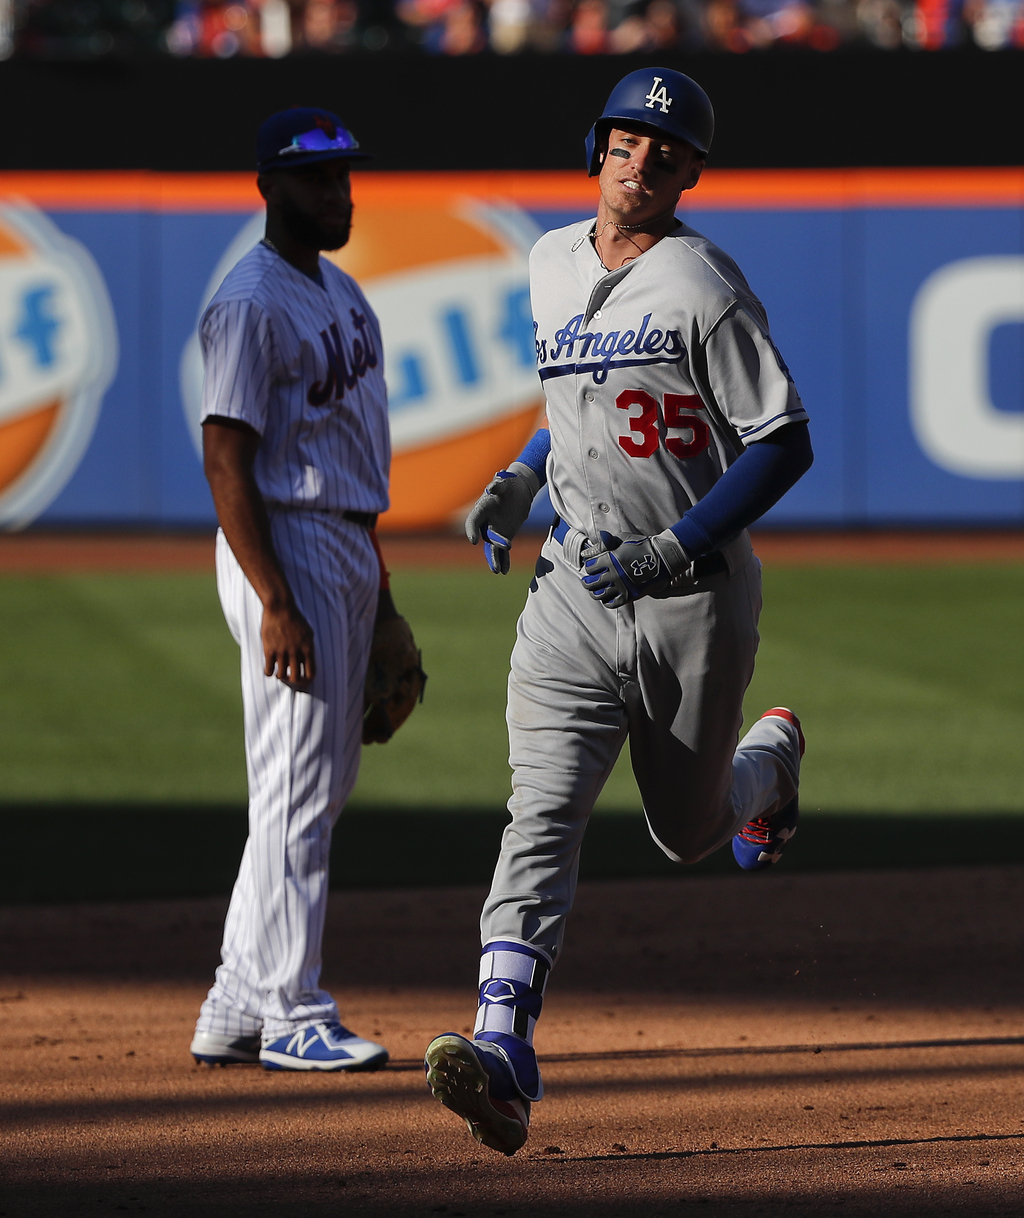 Los Angeles Dodgers' Cody Bellinger (35) rounds the bases after hitting a two-run home run against the New York Mets during the sixth inning of a base...